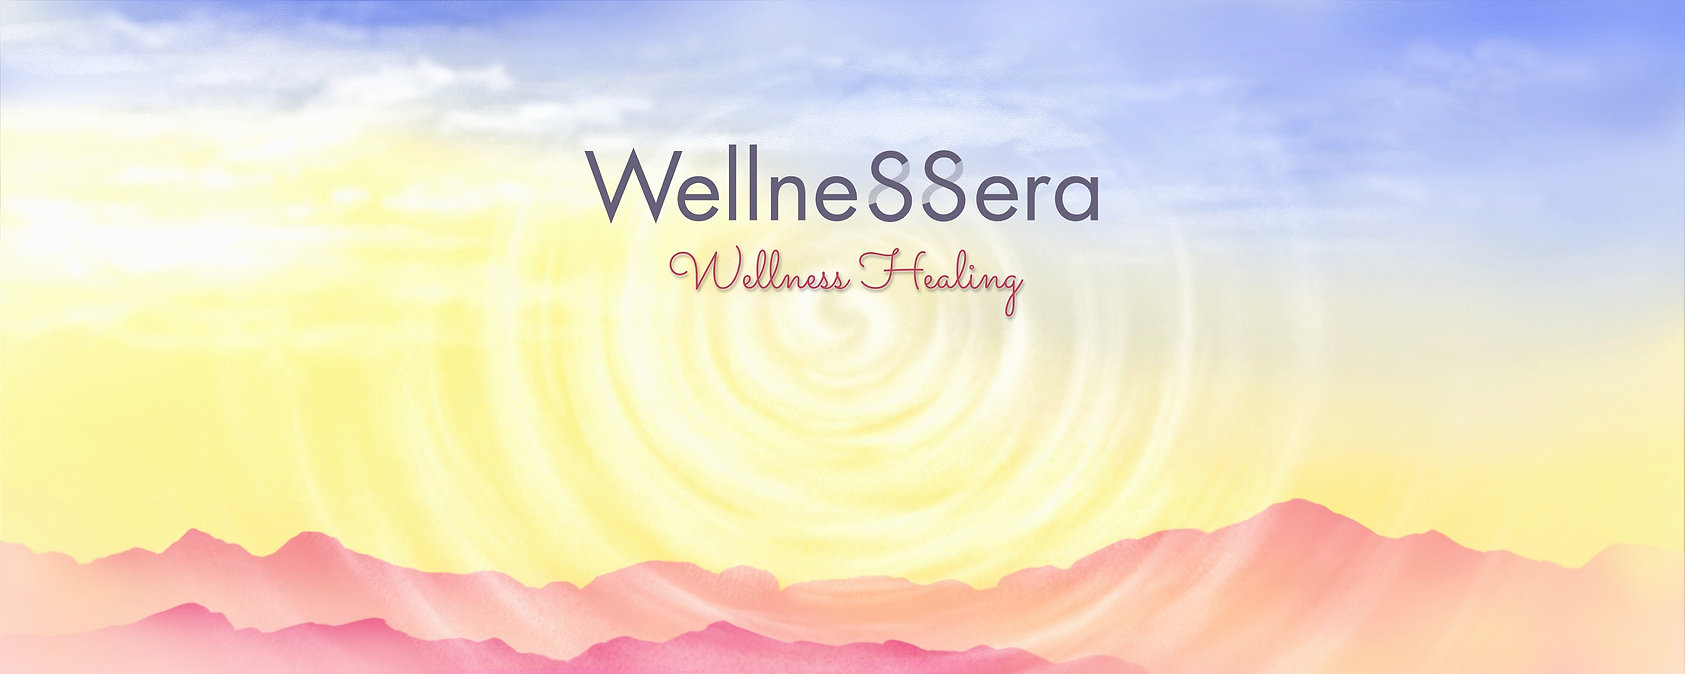 01wellnessera1508_edited.jpg